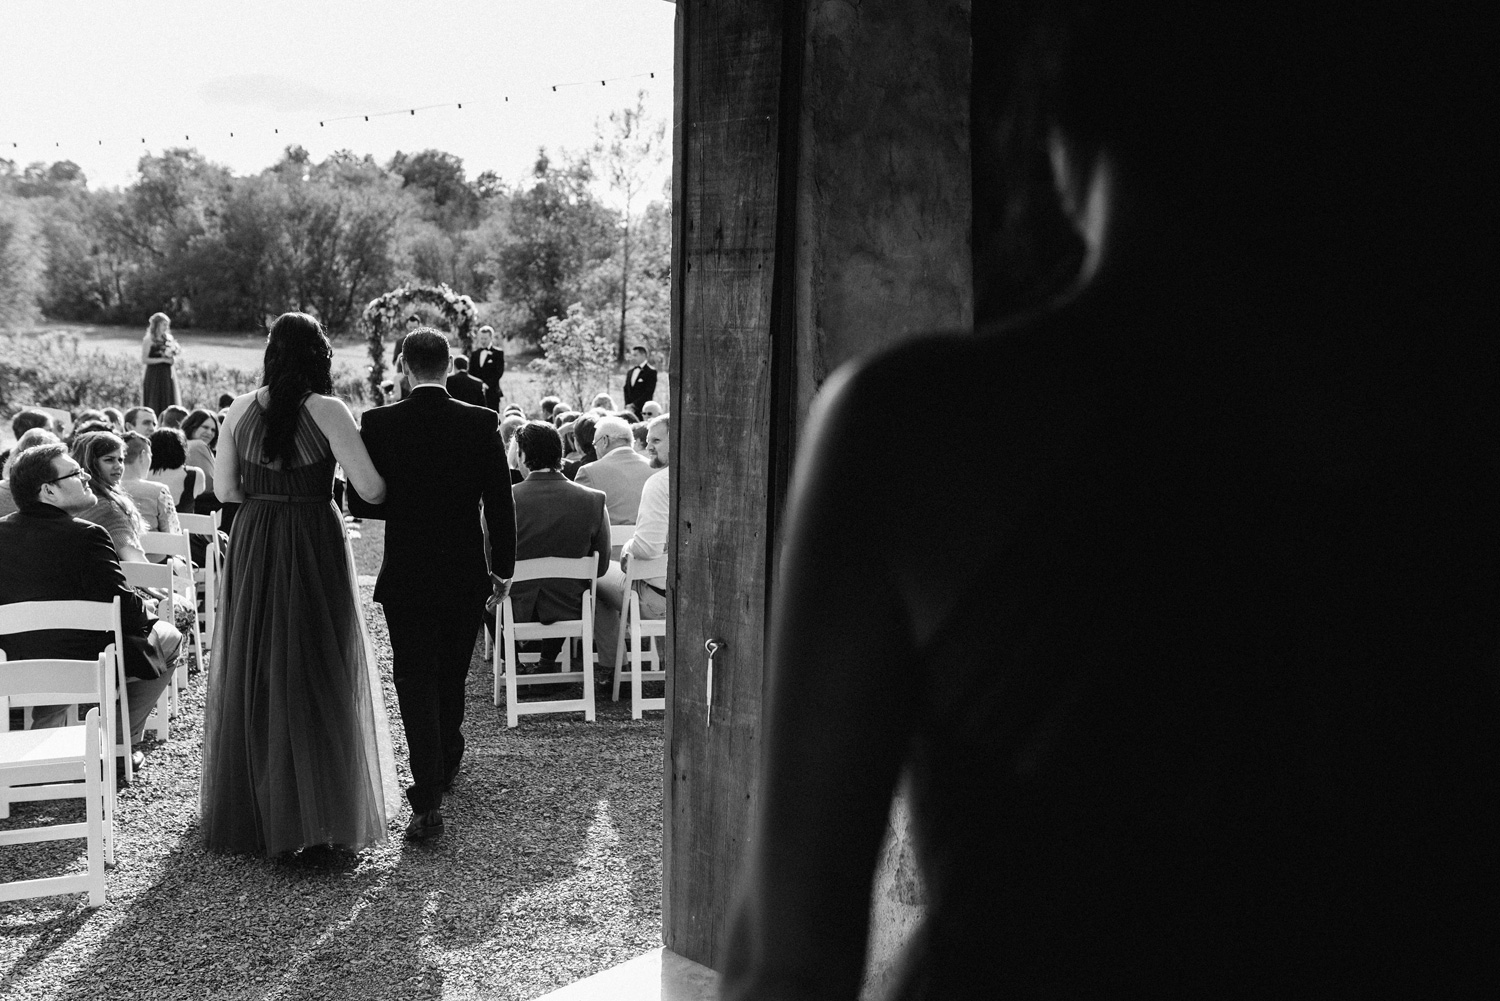 Black and White ceremony image captured by Geneoh photography